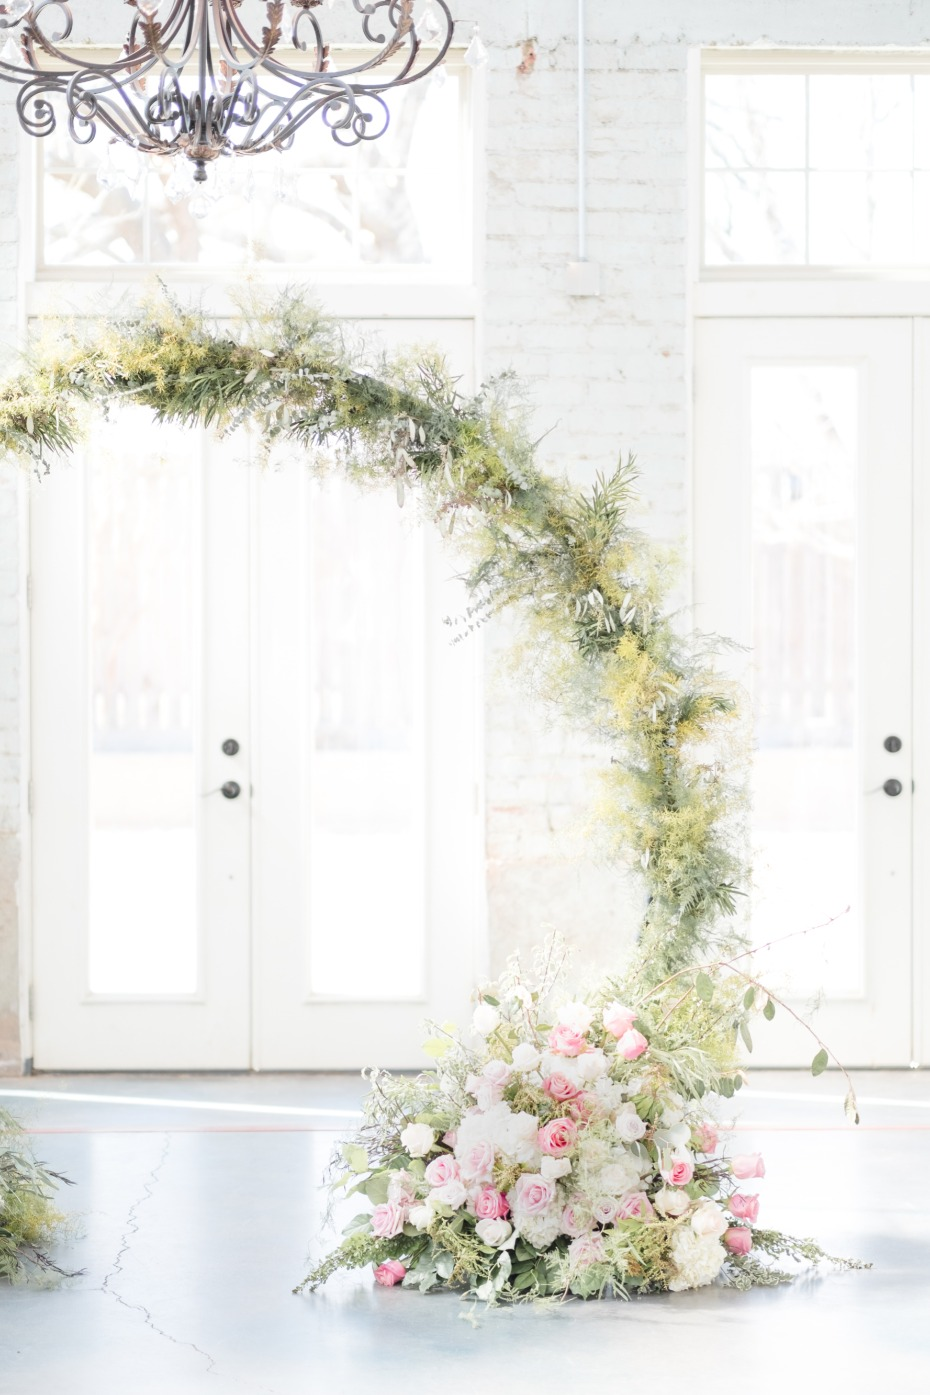 floral archway idea for your ceremony